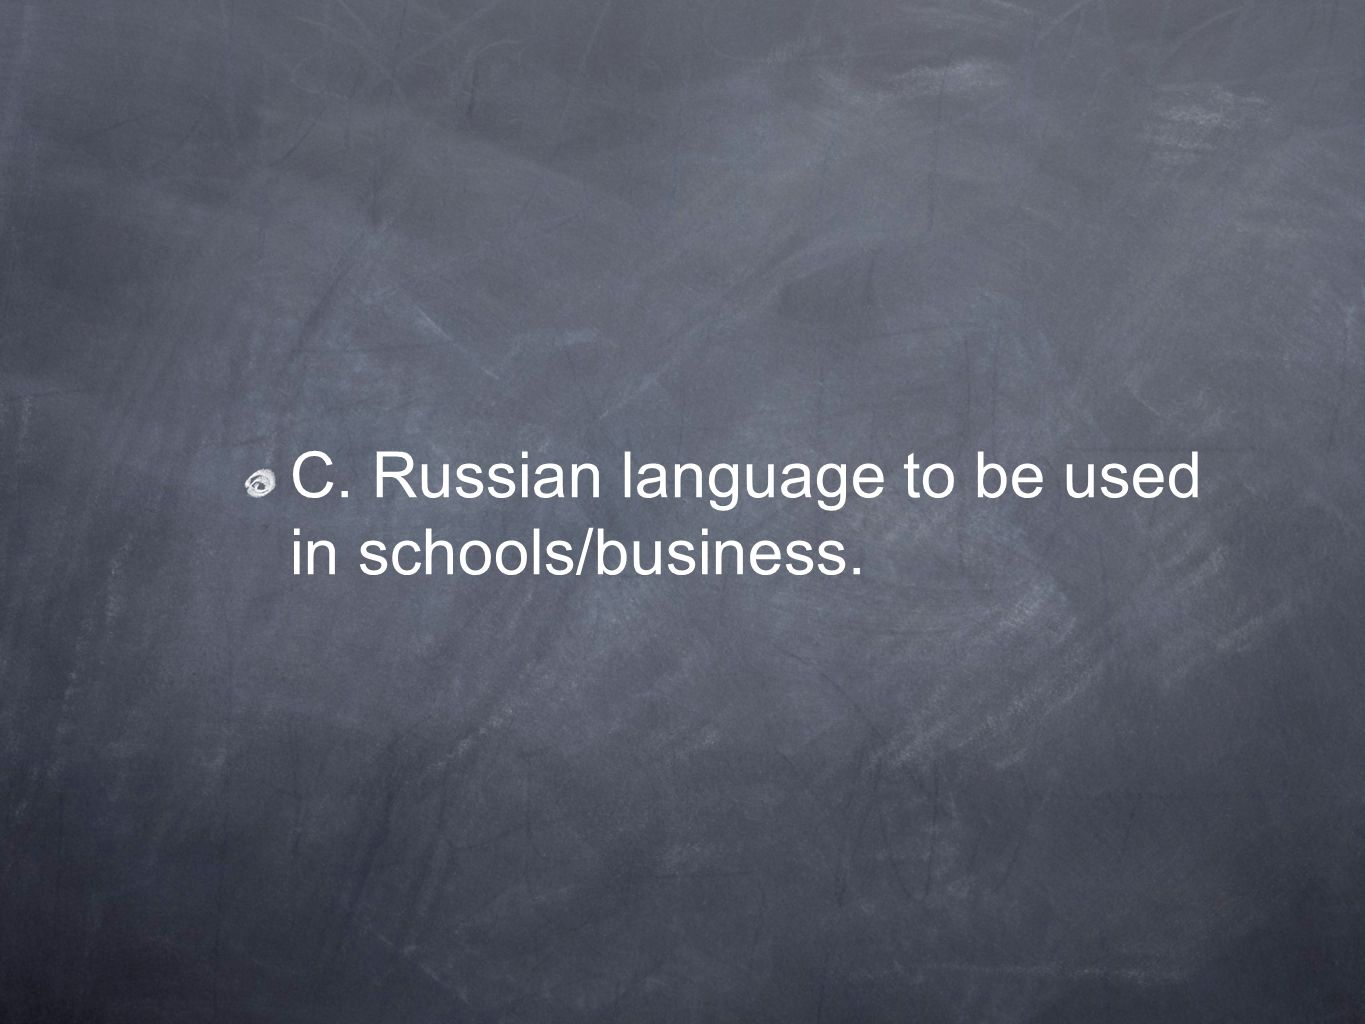 C. Russian language to be used in schools/business.